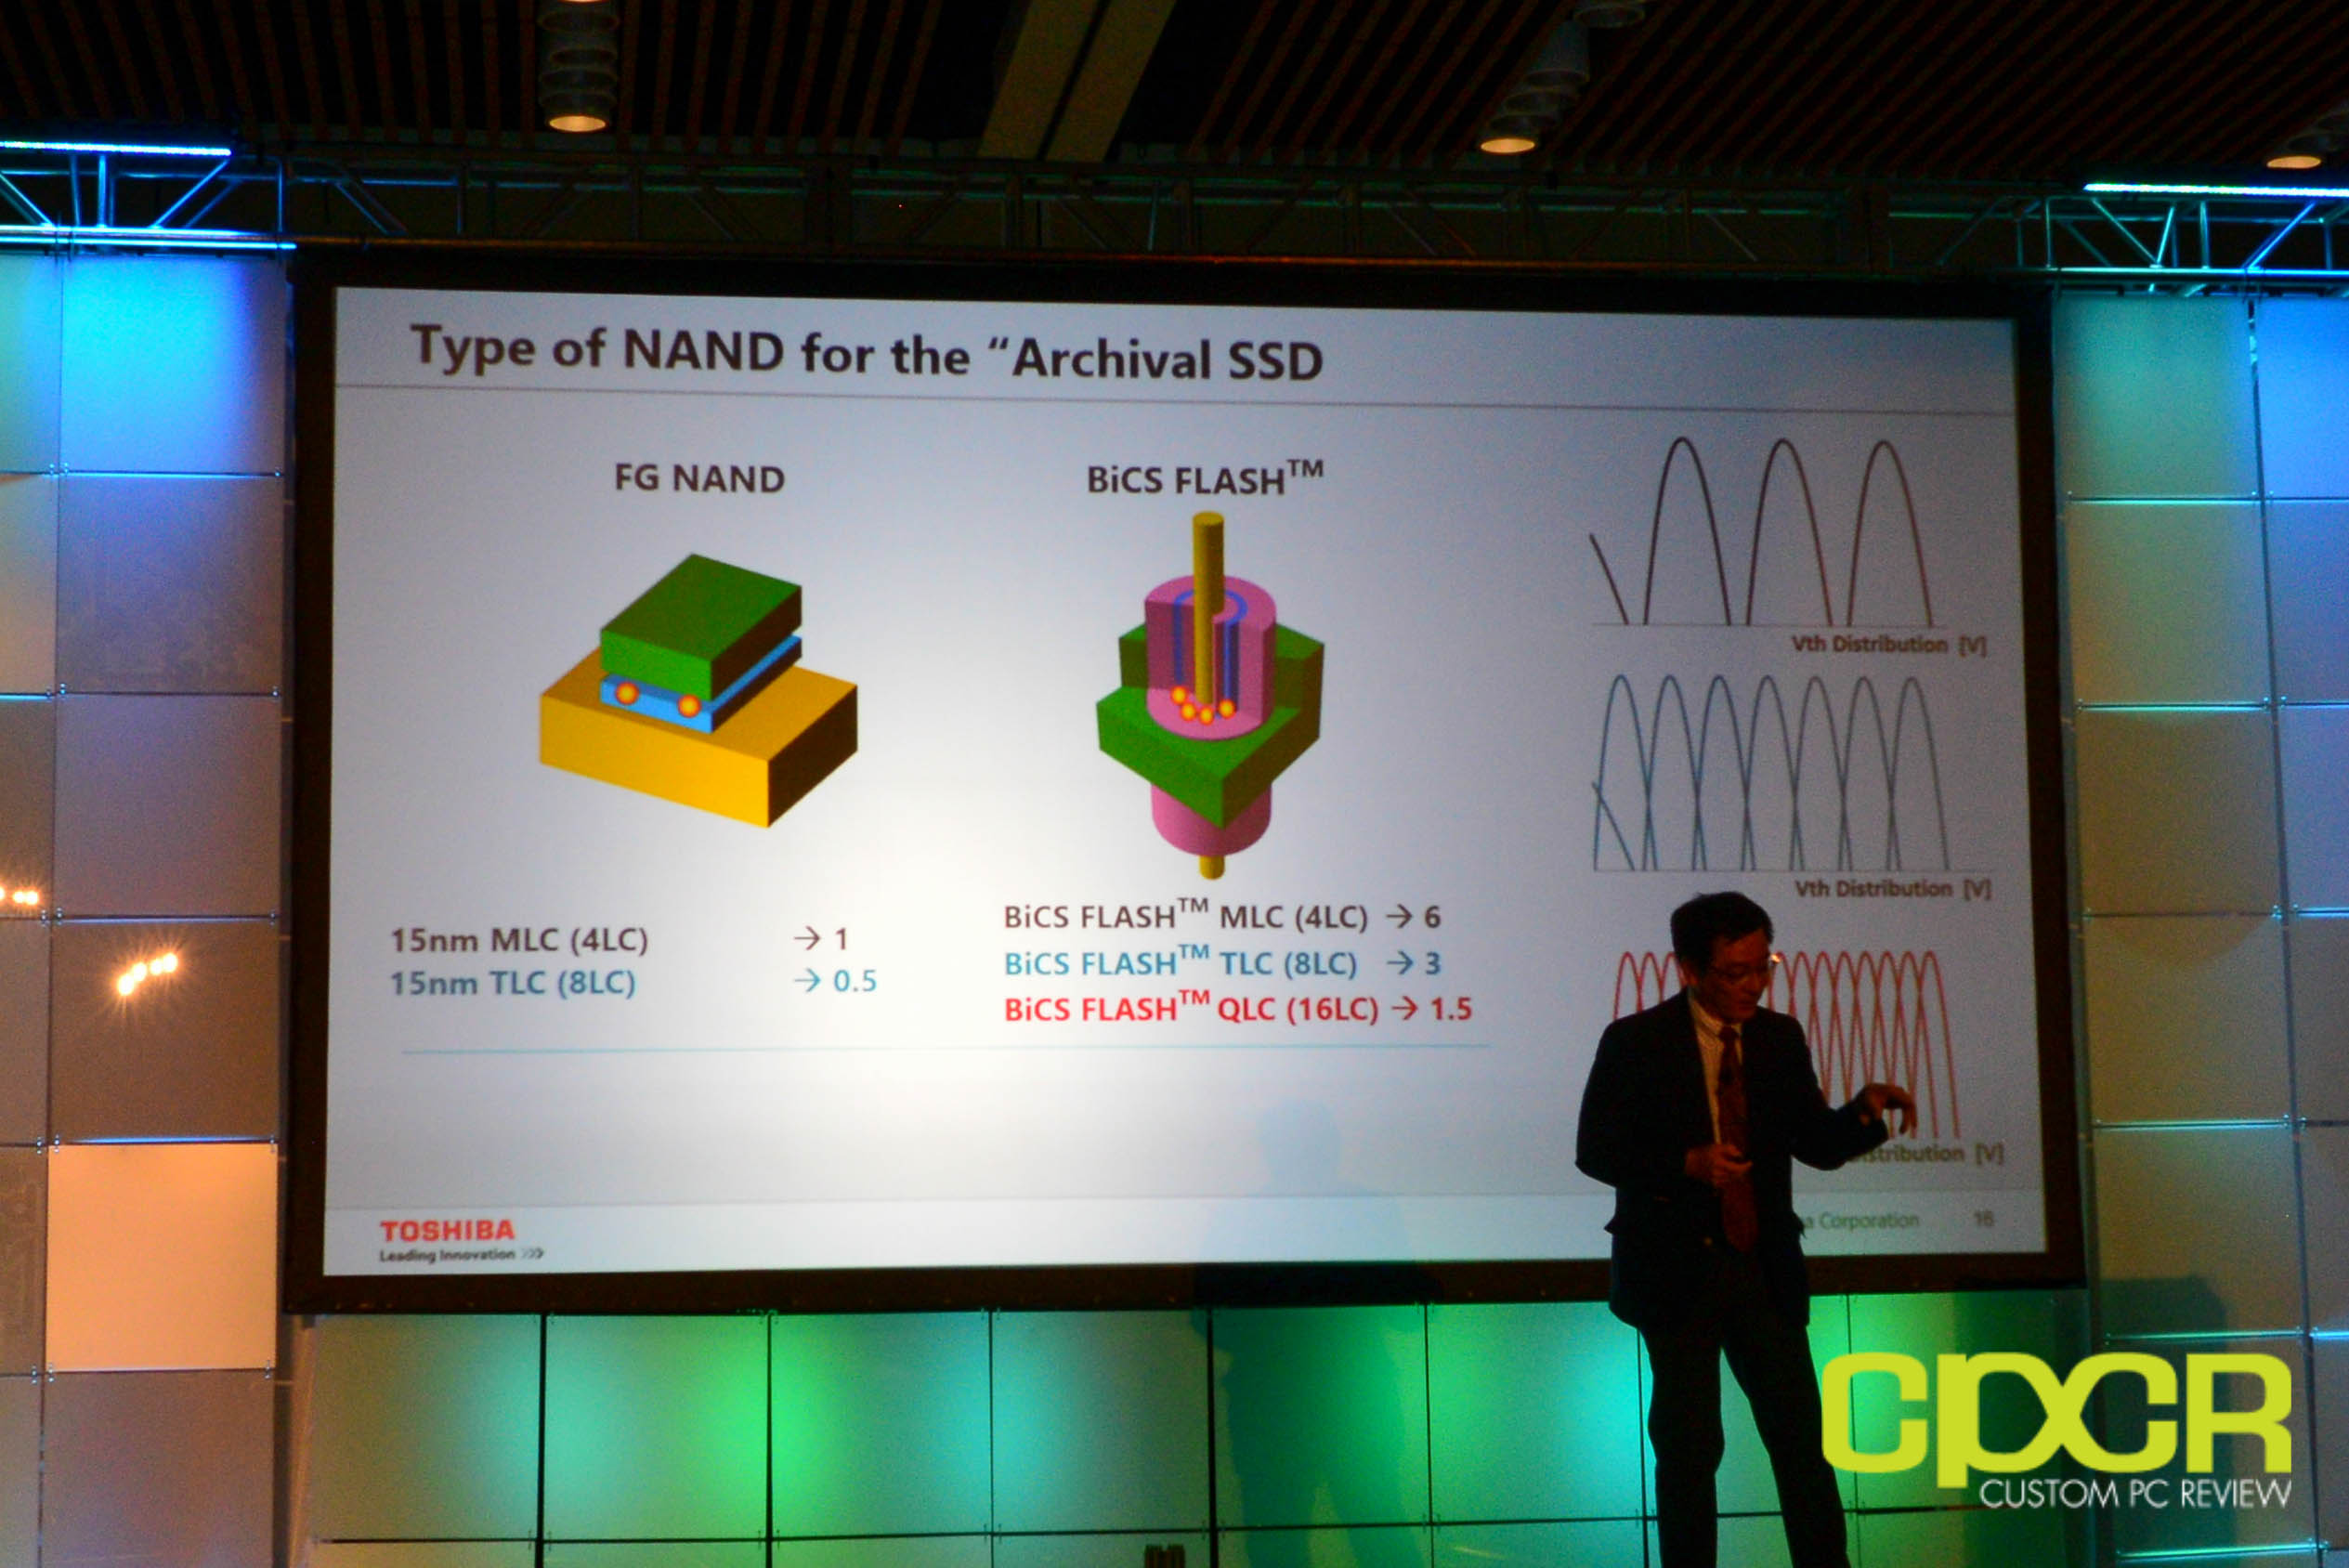 Fms 2015 Toshiba Talks Qlc Bics Flash For Archival Ssds